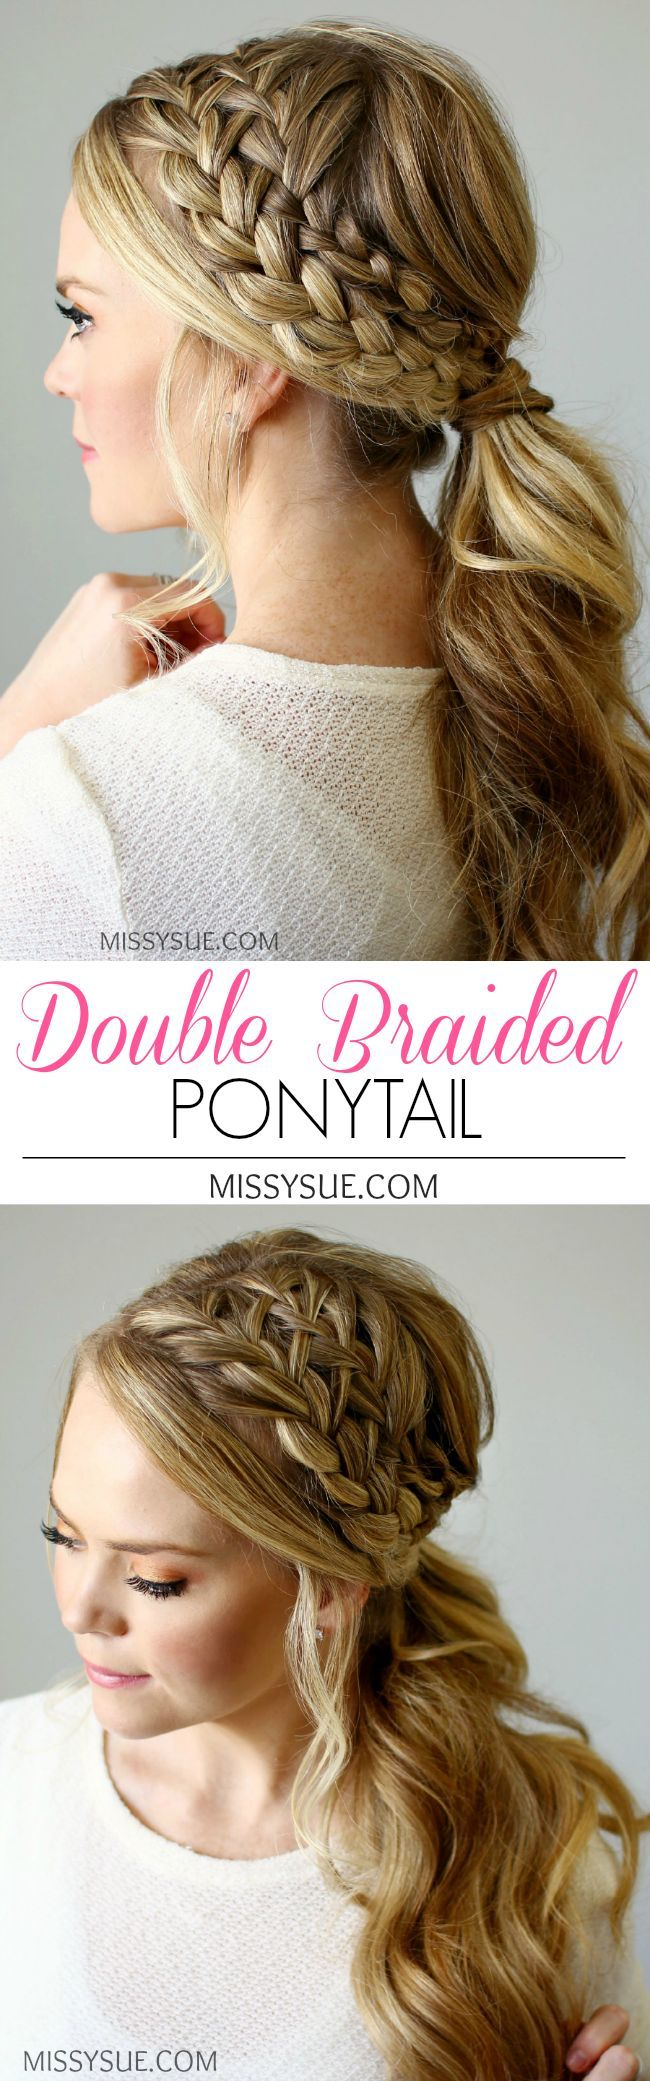 Stupendous 1000 Ideas About Braided Ponytail Hairstyles On Pinterest Short Hairstyles Gunalazisus